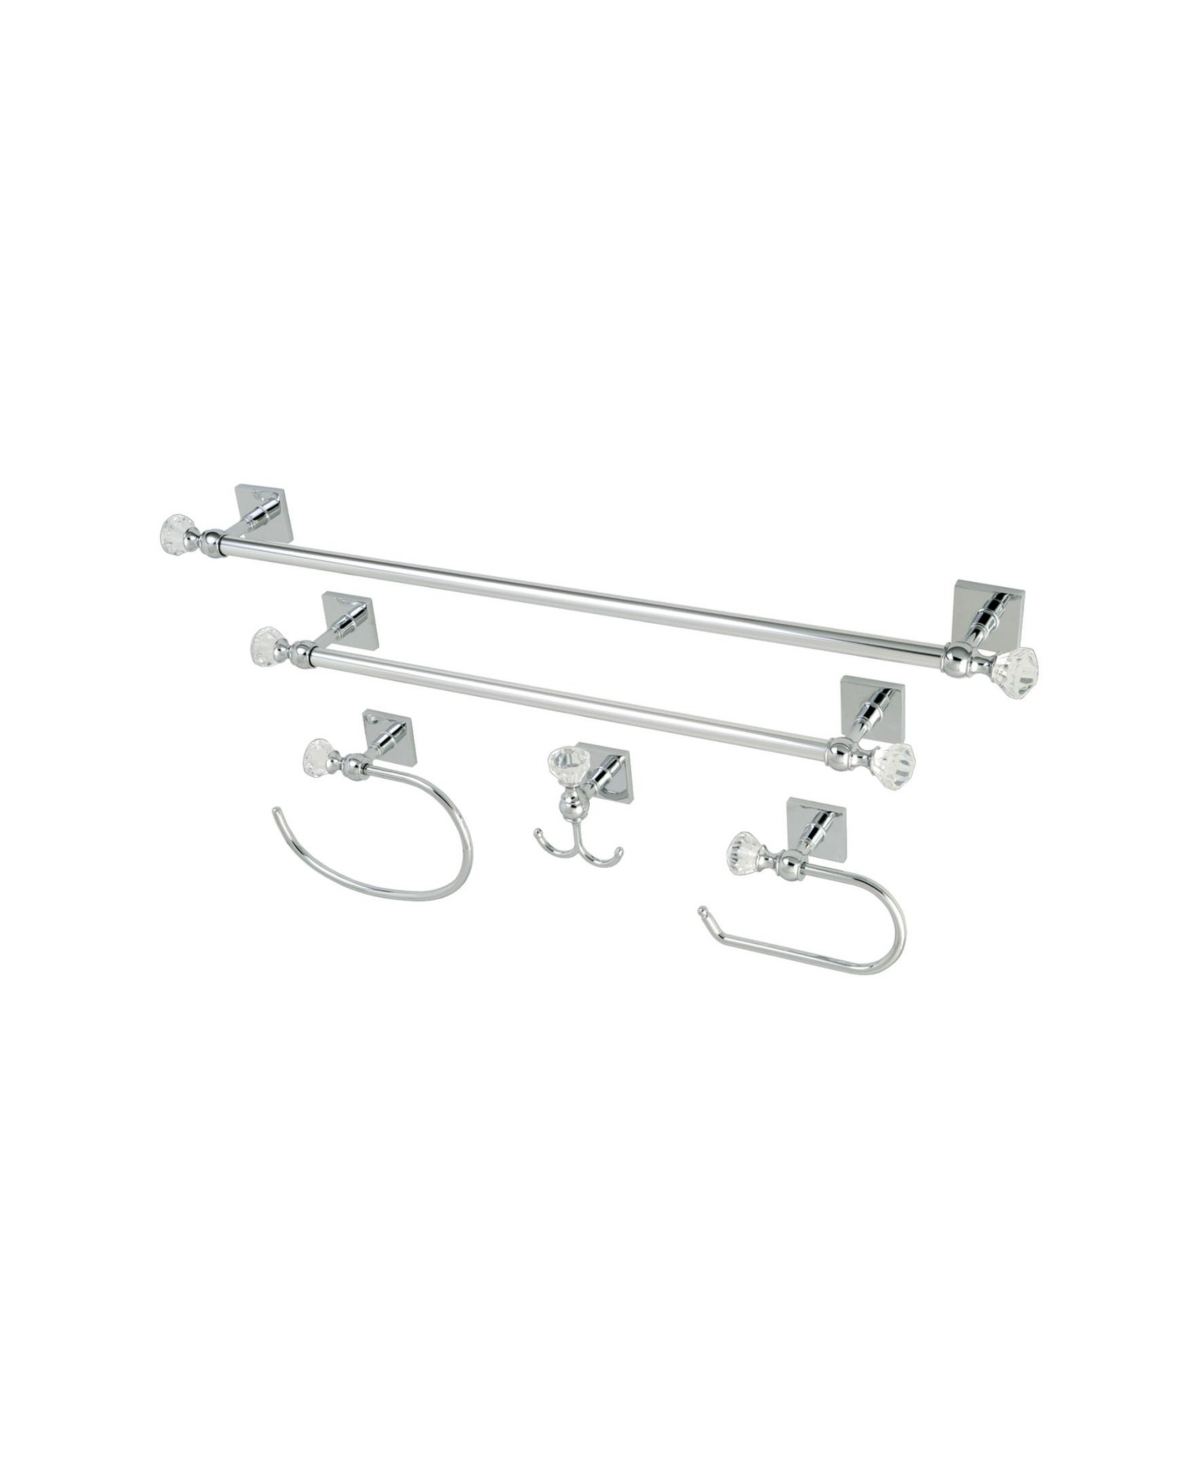 Kingston Brass Celebrity 18-Inch and 24-Inch Towel Bar Bathroom Accessory Combo in Polished Chrome Bedding